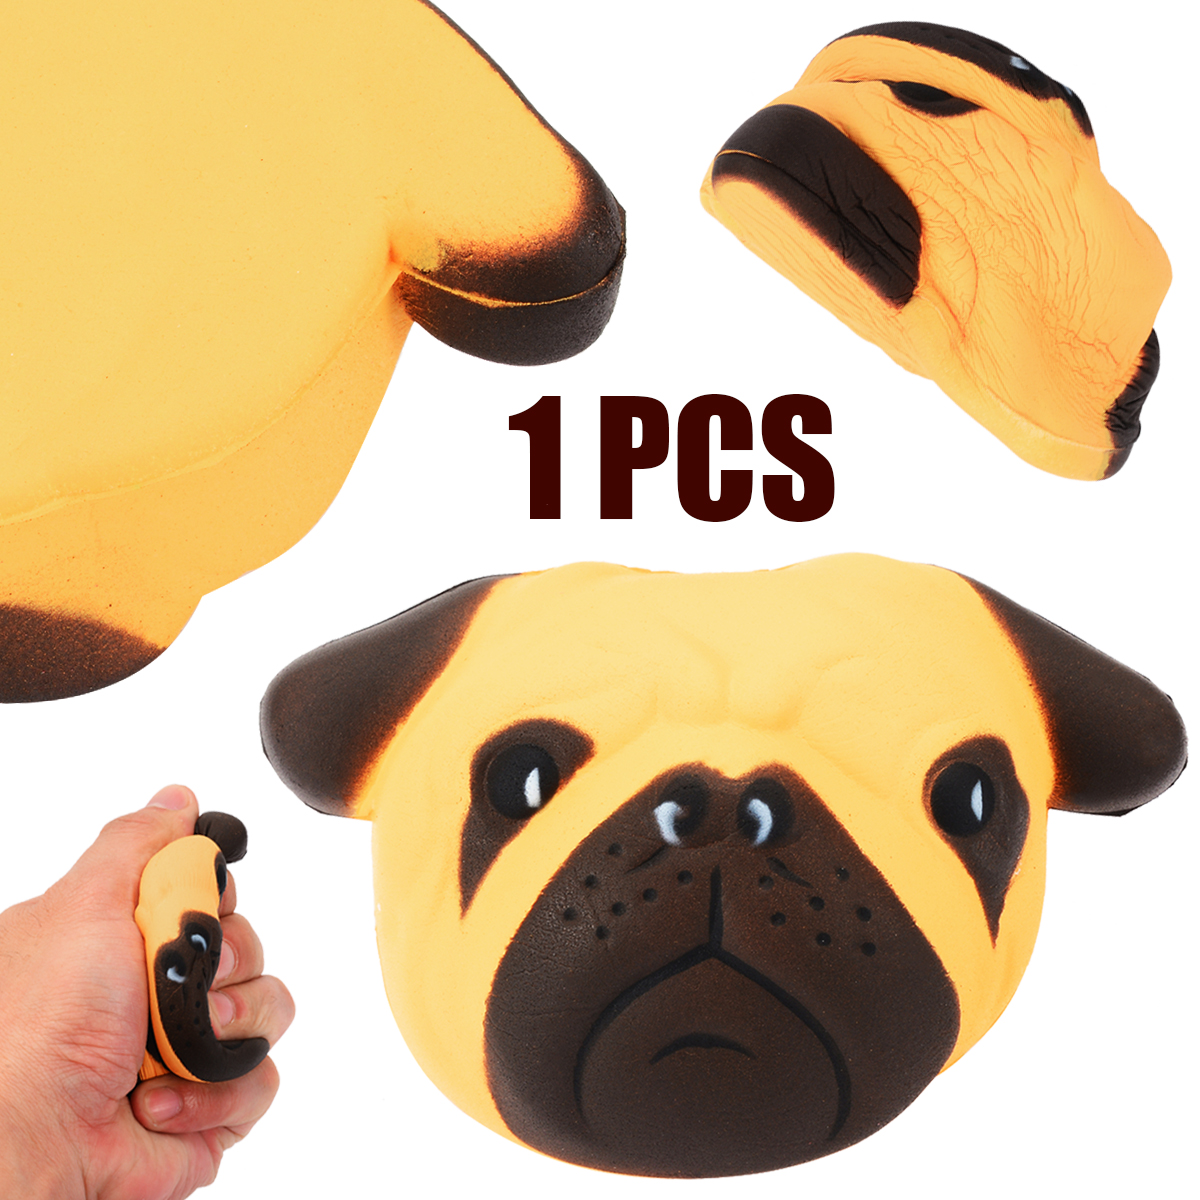 Pug Dog Jumbo Slow Rising Soft Squishy Squishies Anti Stress Kid Toy Gift For Children Fun Antistress Ball Pug Cell Phone Straps Strengthening Waist And Sinews Mobile Phone Straps